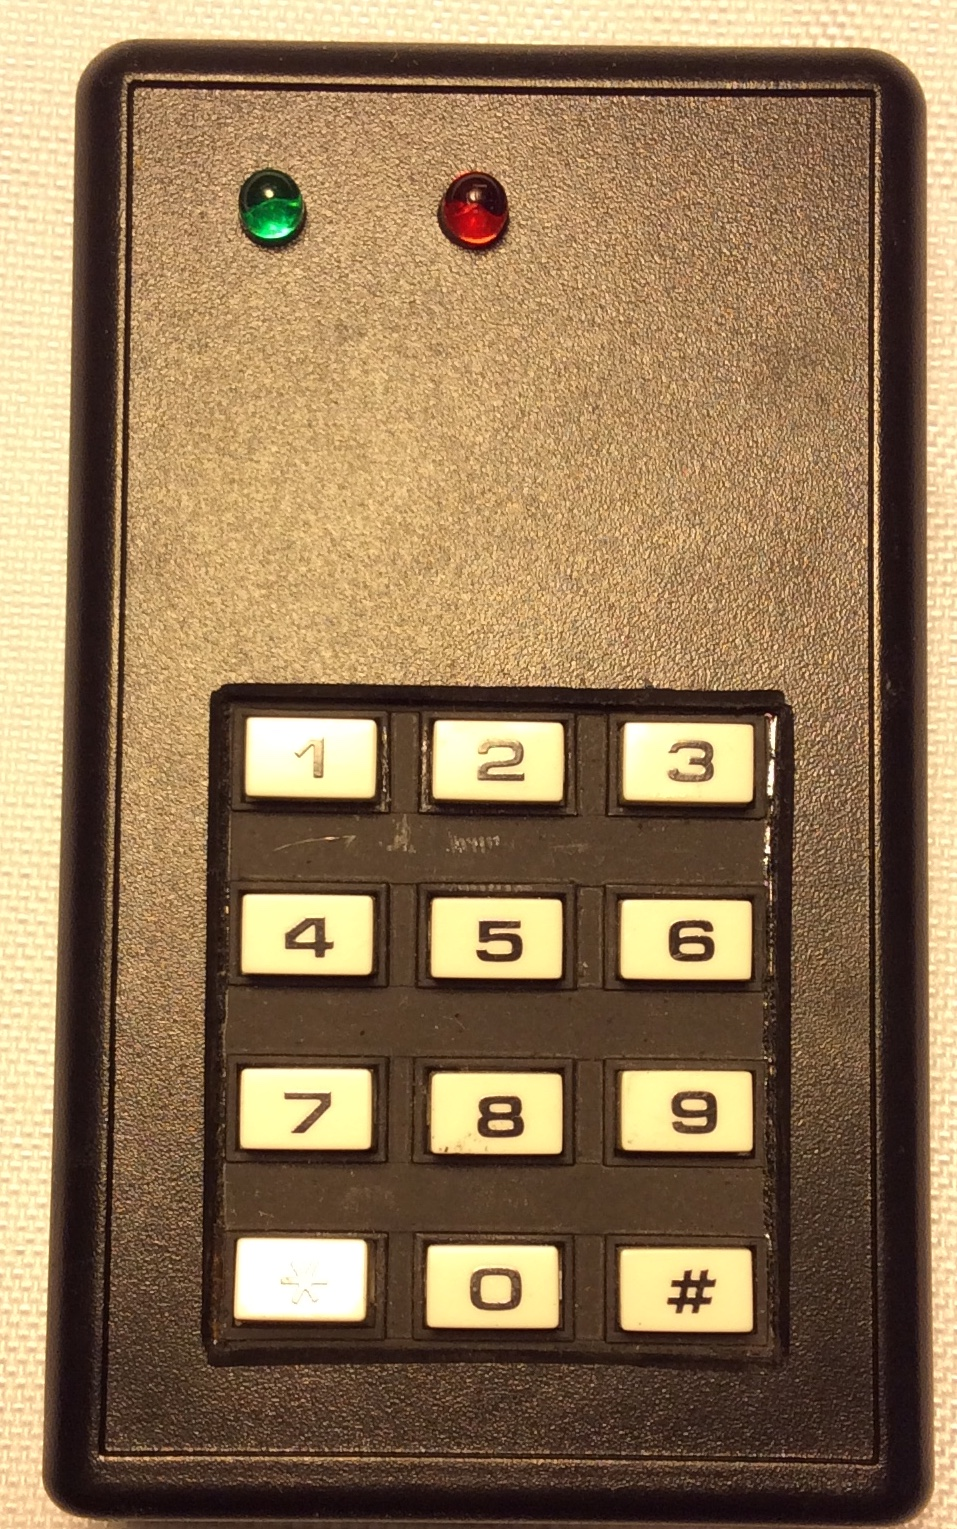 Black plastic keypad with white keys